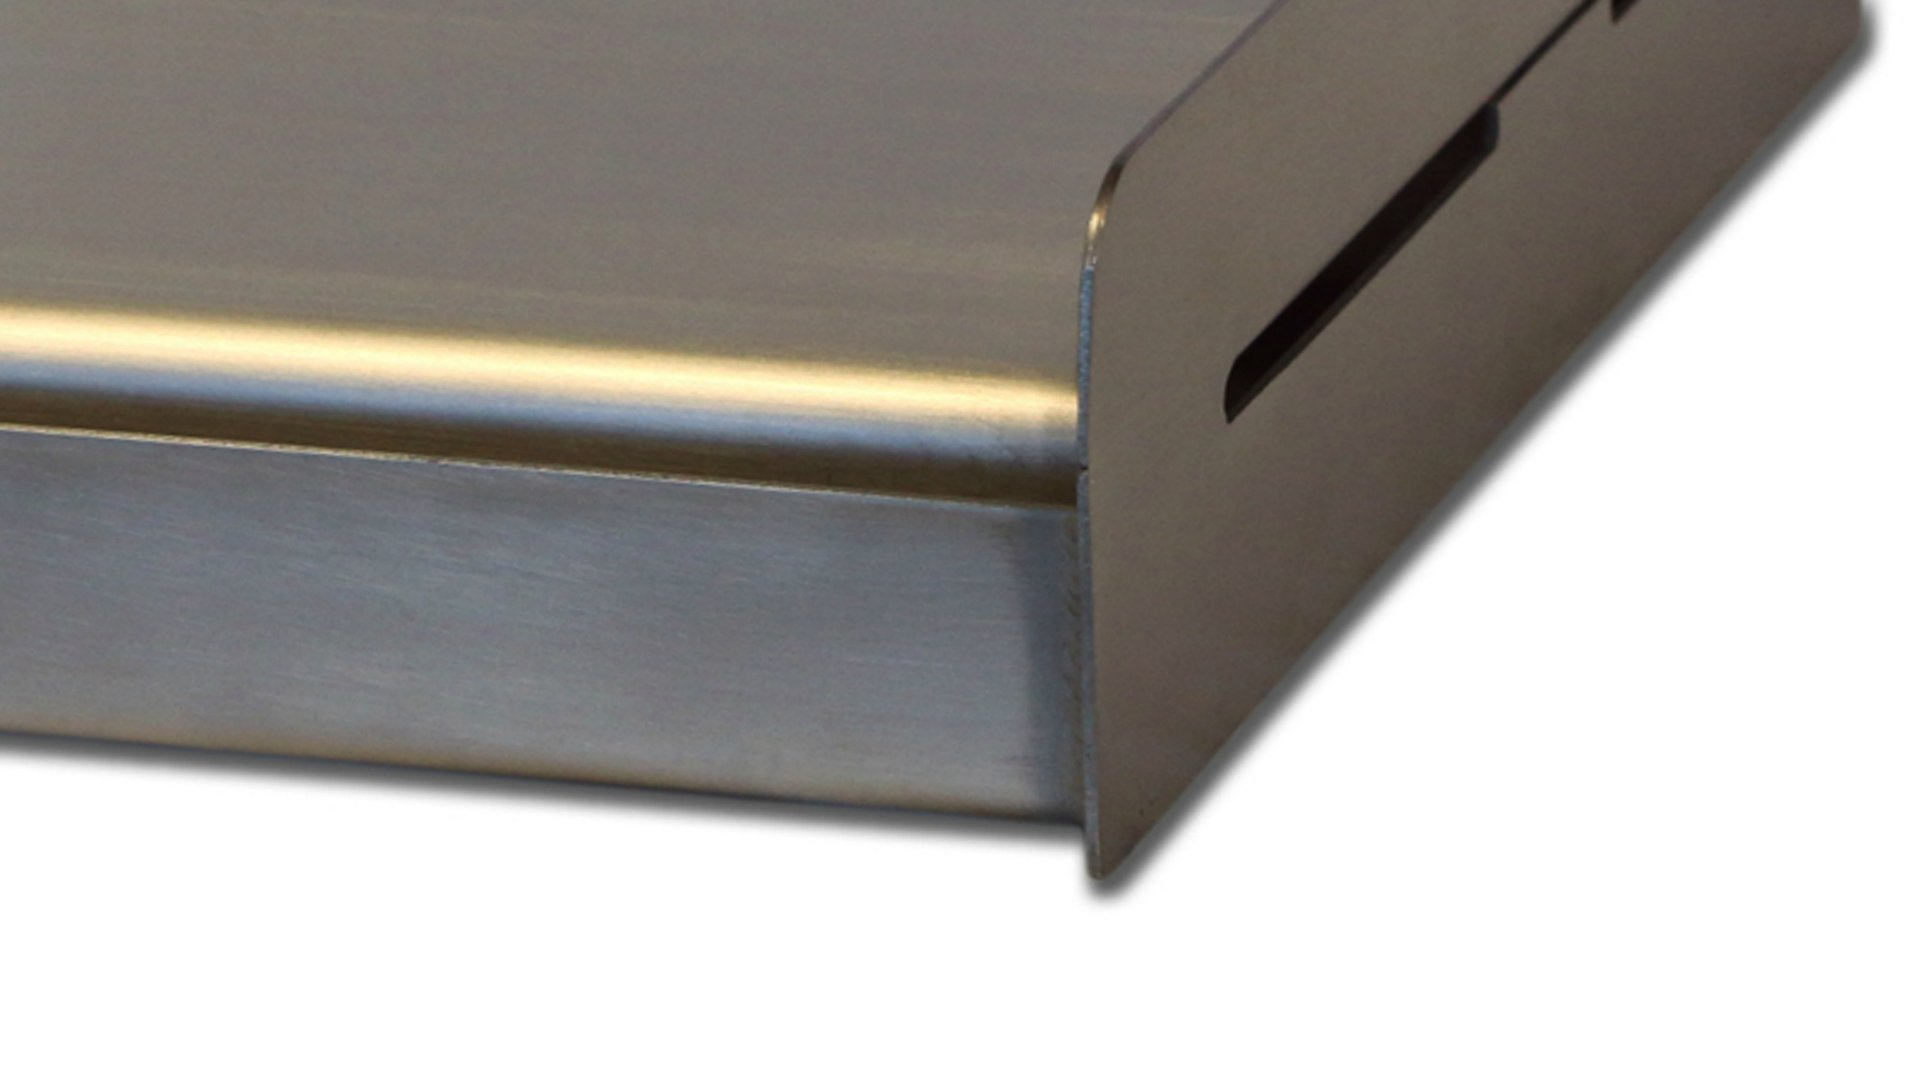 Little Griddle SQ180 Universal Griddle for BBQ Grills, Stainless (Formerly the Sizzle-Q) by Little Griddle (Image #2)